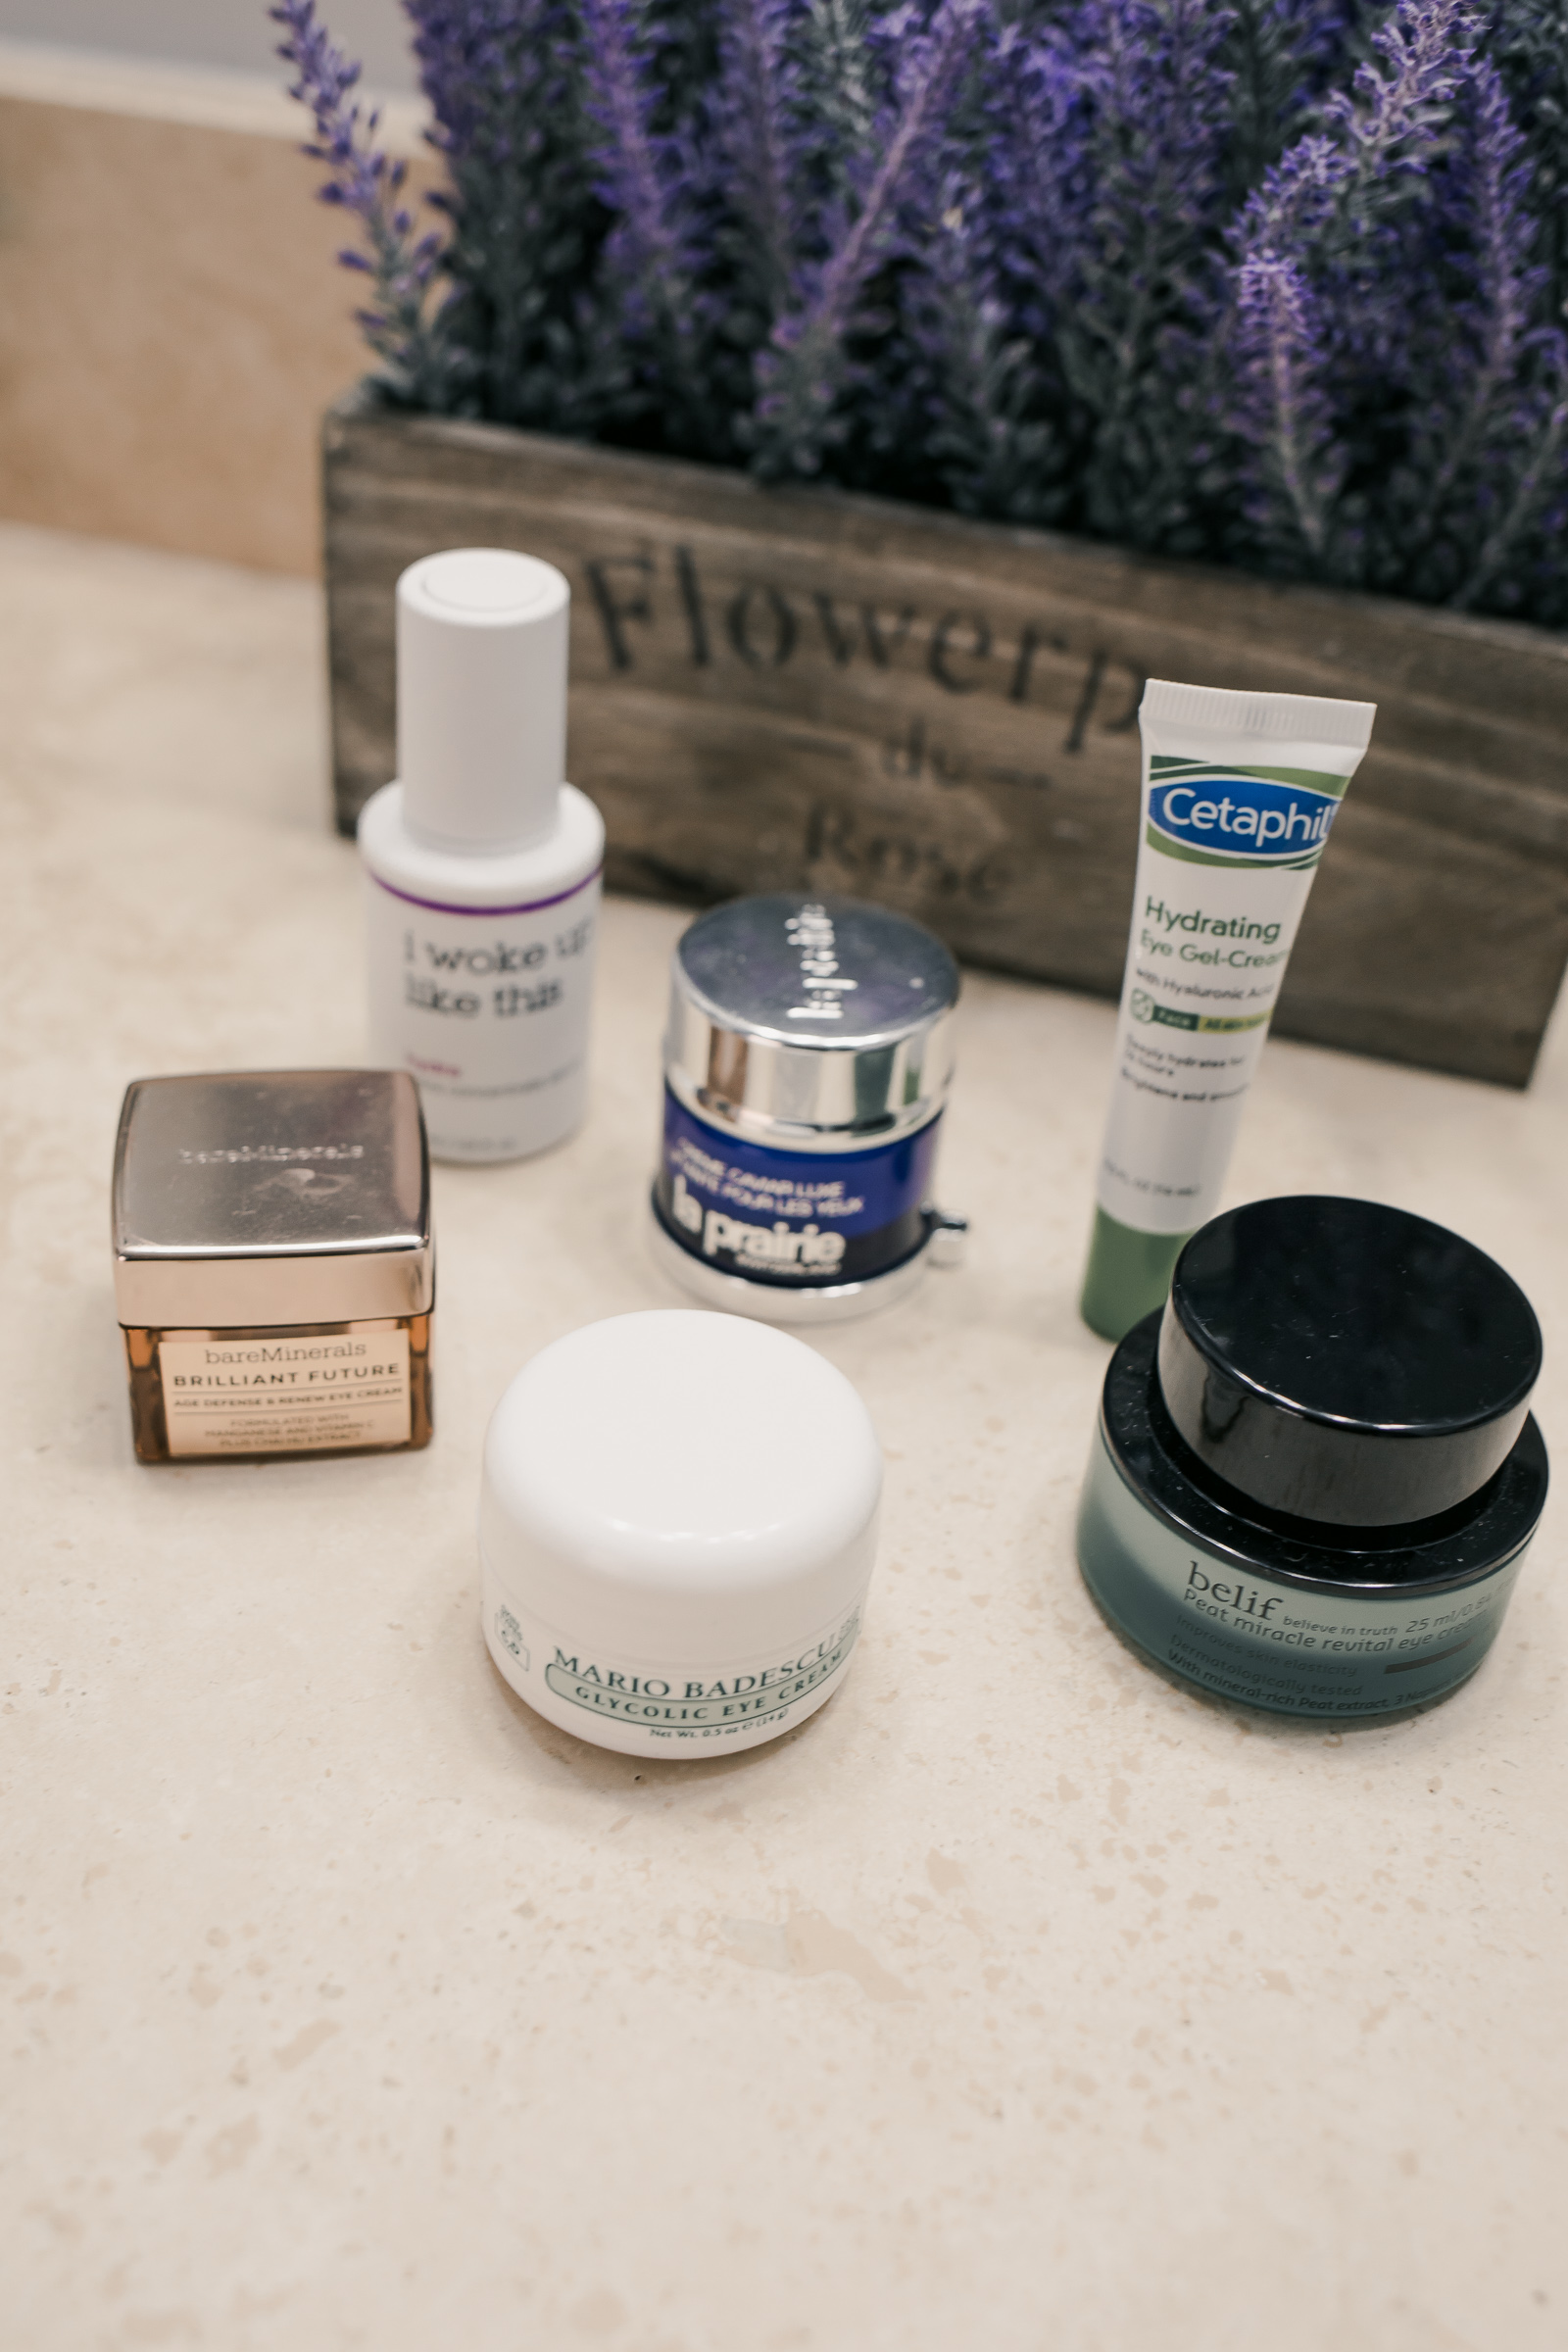 Looking for Eye Creams? Houston Beauty blogger Uptown with Elly Brown shares the top 10 best Eye Creams voted by YOU.